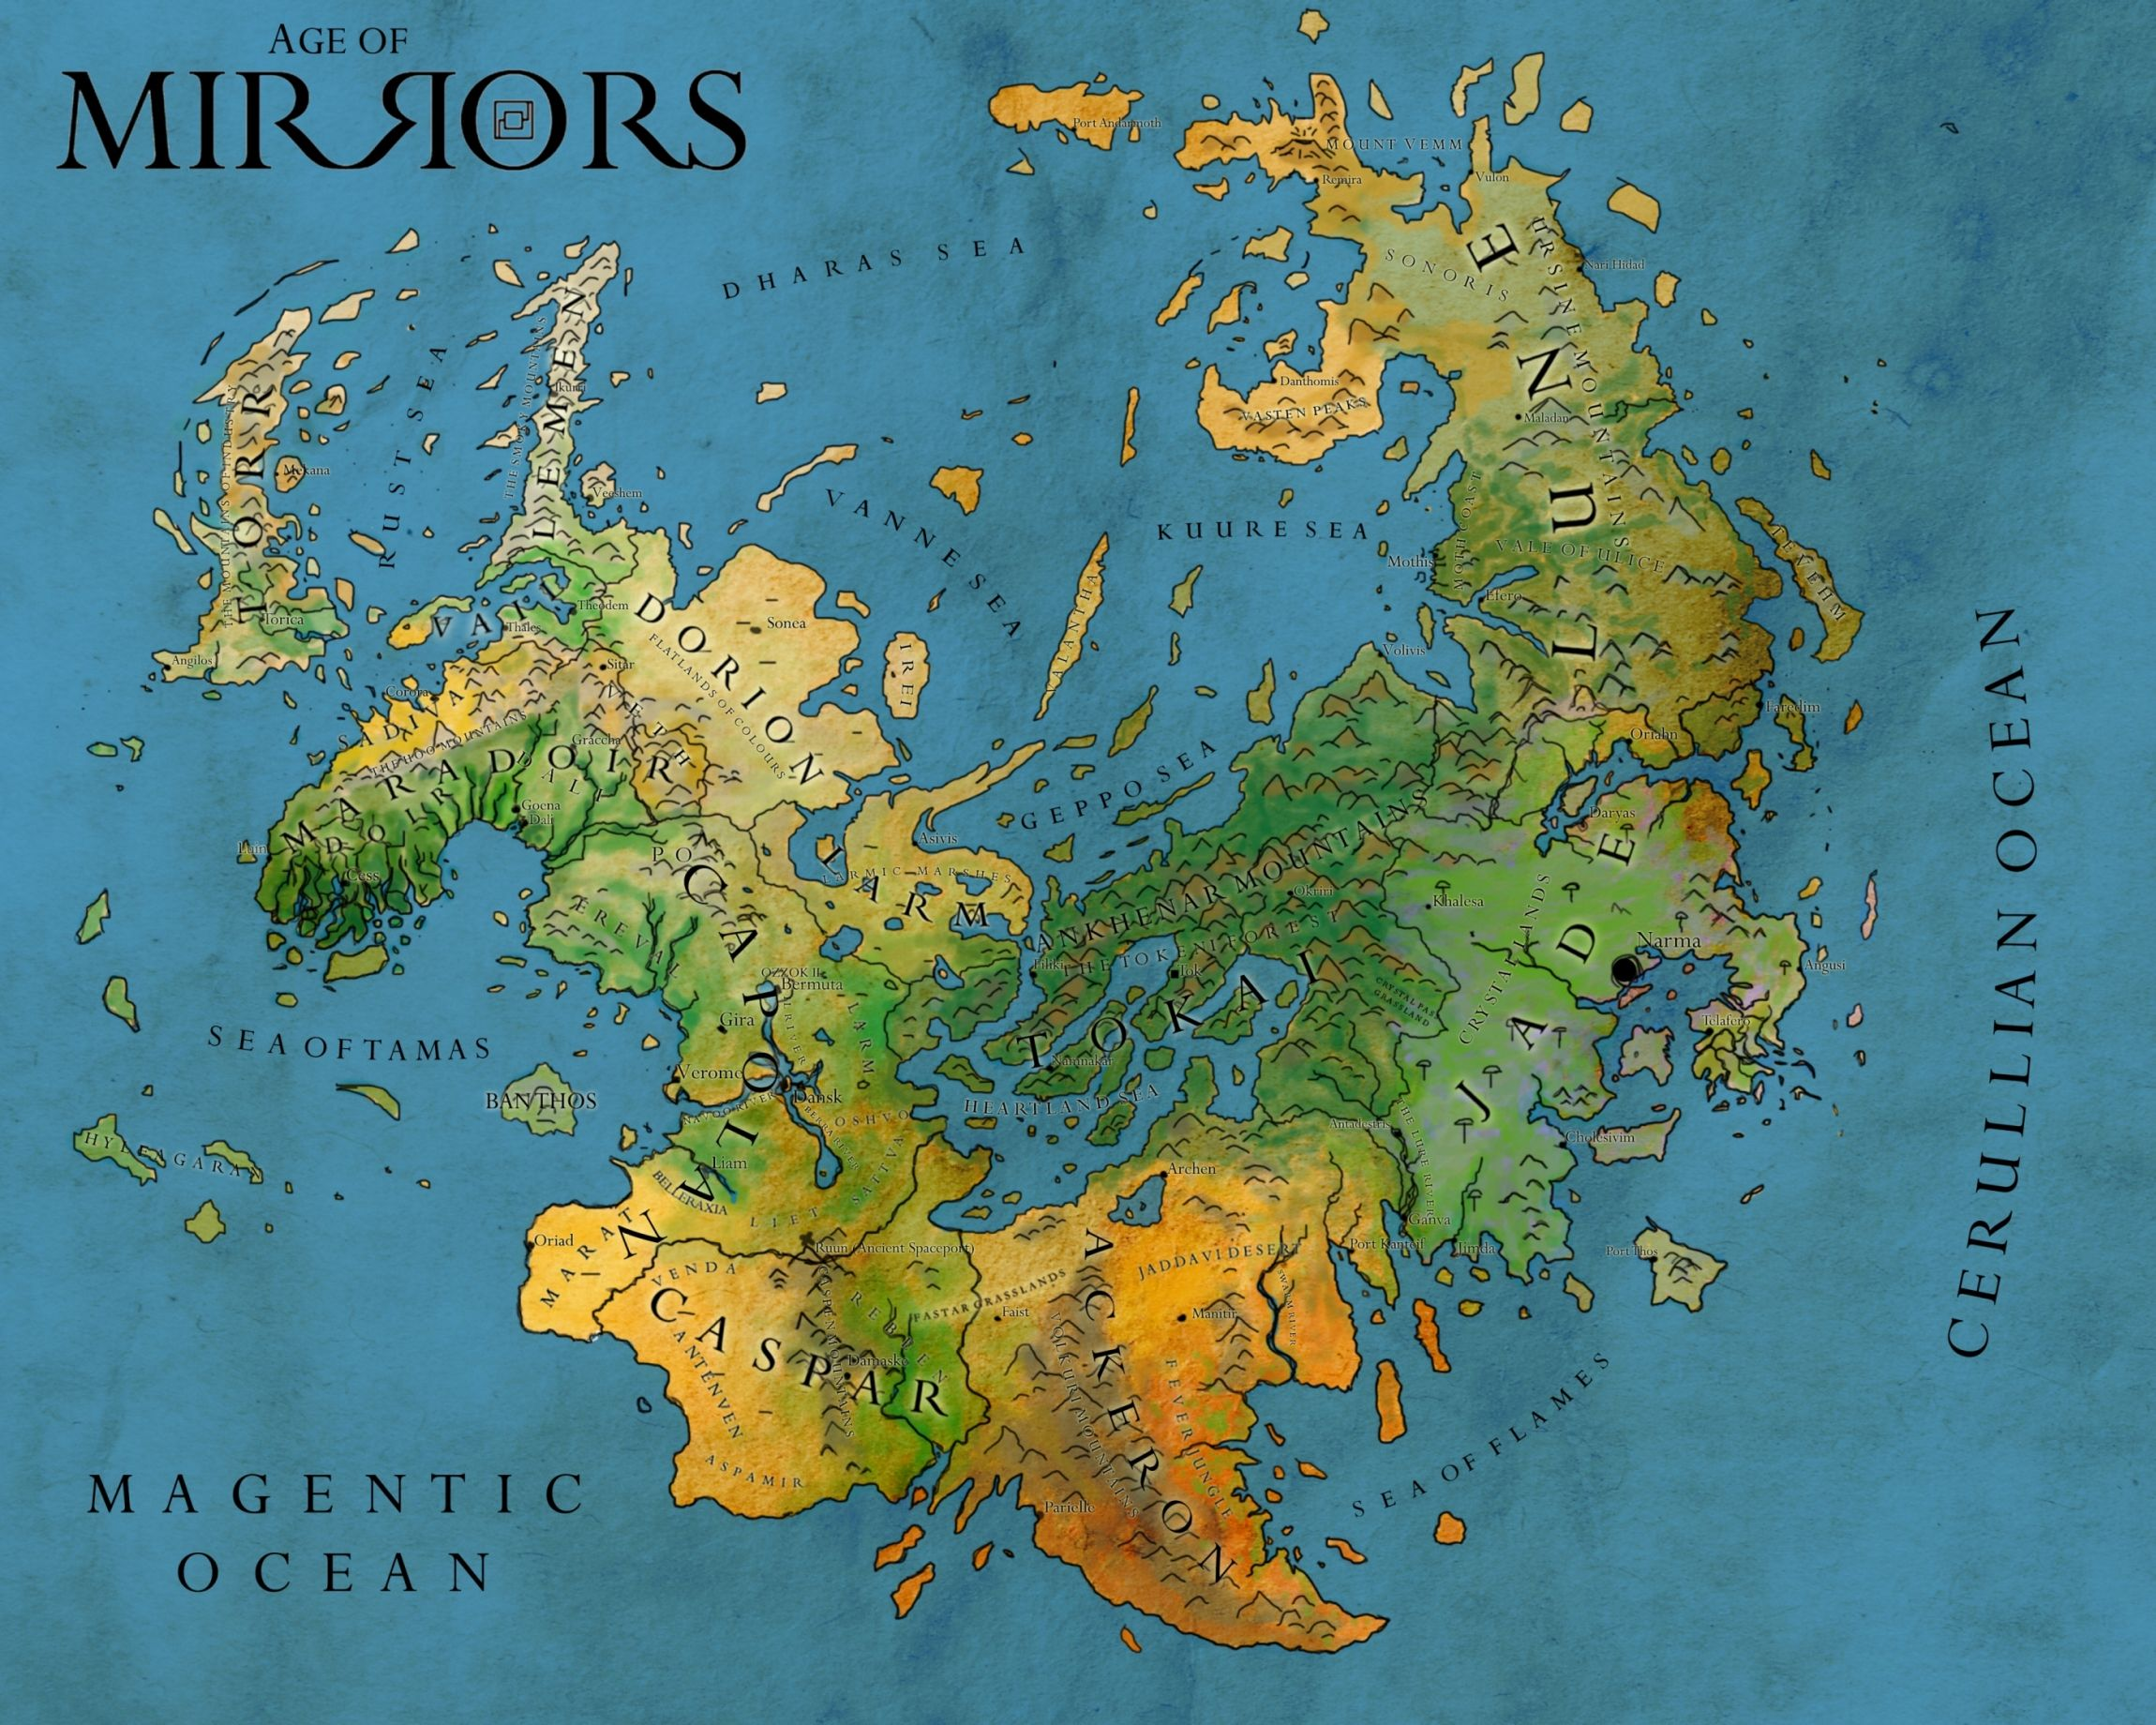 View Photo in 2019 | Fantasy map, Fantasy world map ... on mythological world map, webkinz world map, world system map, ancient language map, sick world map, perfect society map, futuristic town map, second world map, imagination world map, make believe island map, create your own fictional map, living world map, fictional world map, ideology world map, first law abercrombie map, persistent world map, one piece world map, large world map, negative world map, fictional nation map,